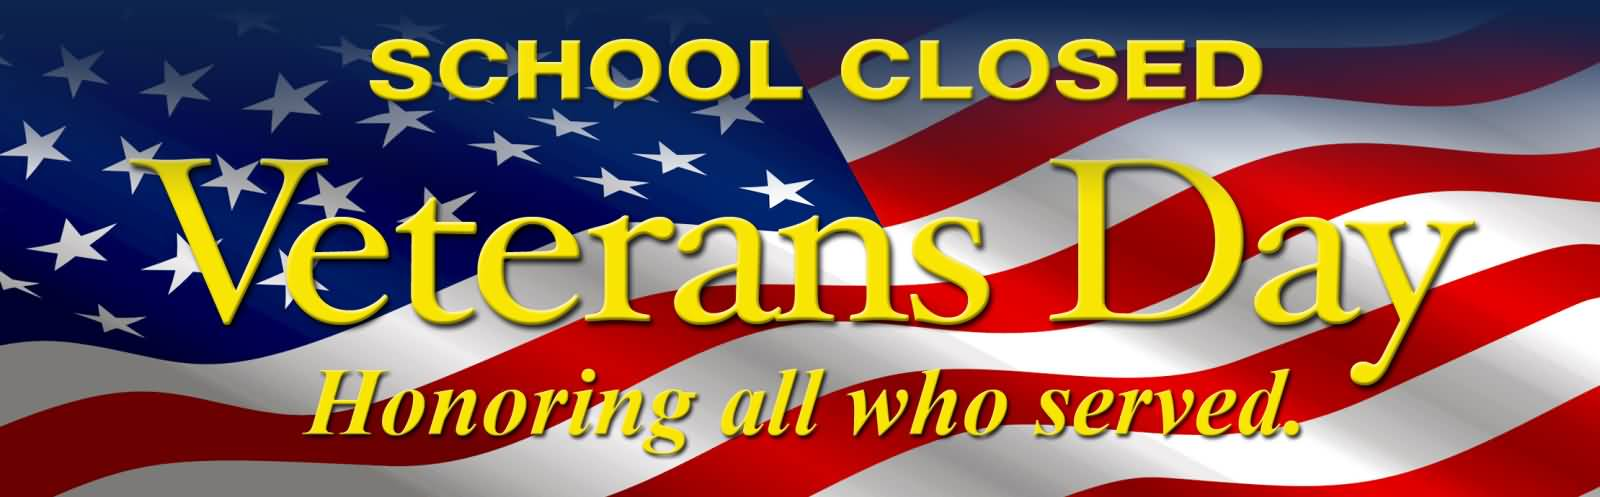 Veterans day clip art - School Closed Veterans Day Honoring All Who Served Facebook Cover Picture